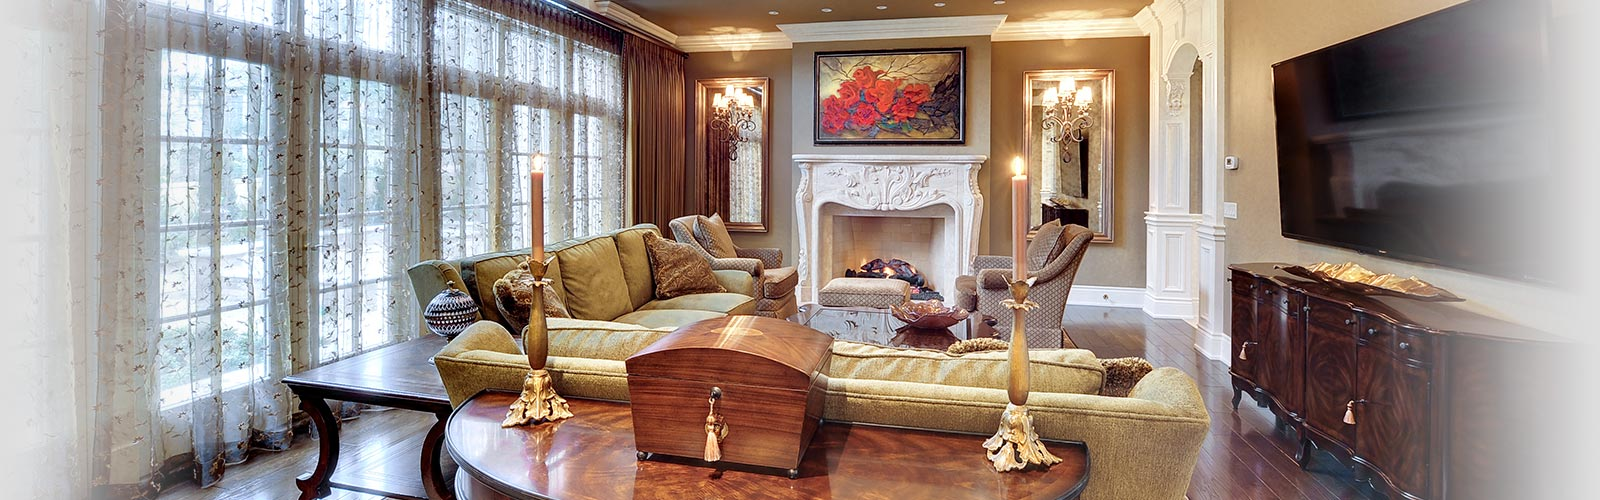 Family Room 3, Custom Home Builder